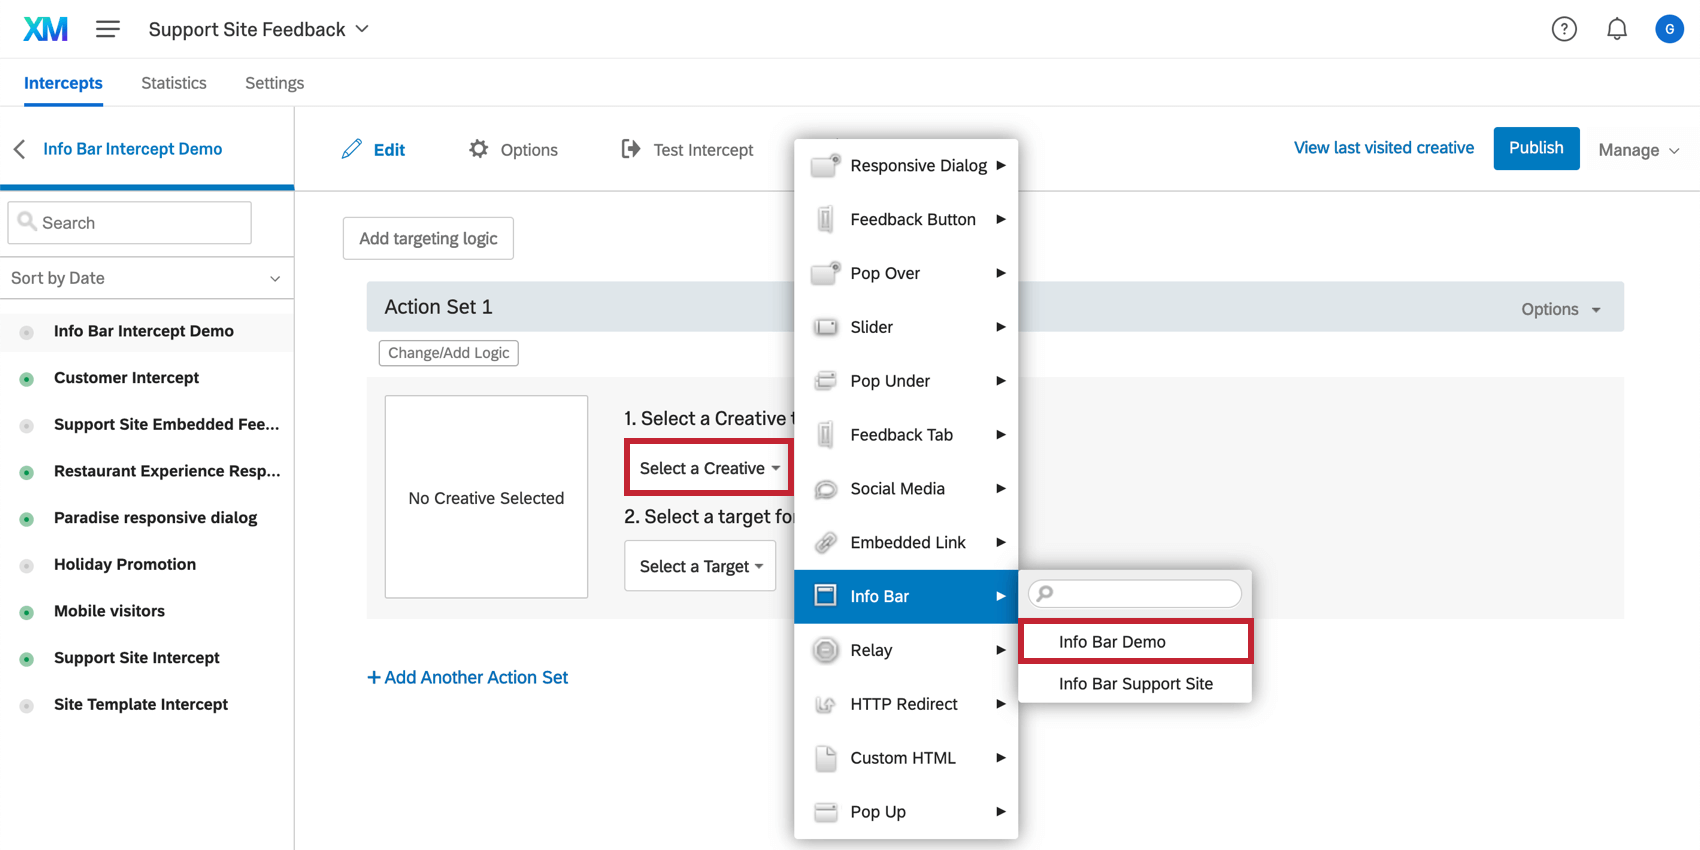 Choosing a creative for an intercept from the drop down list that appears